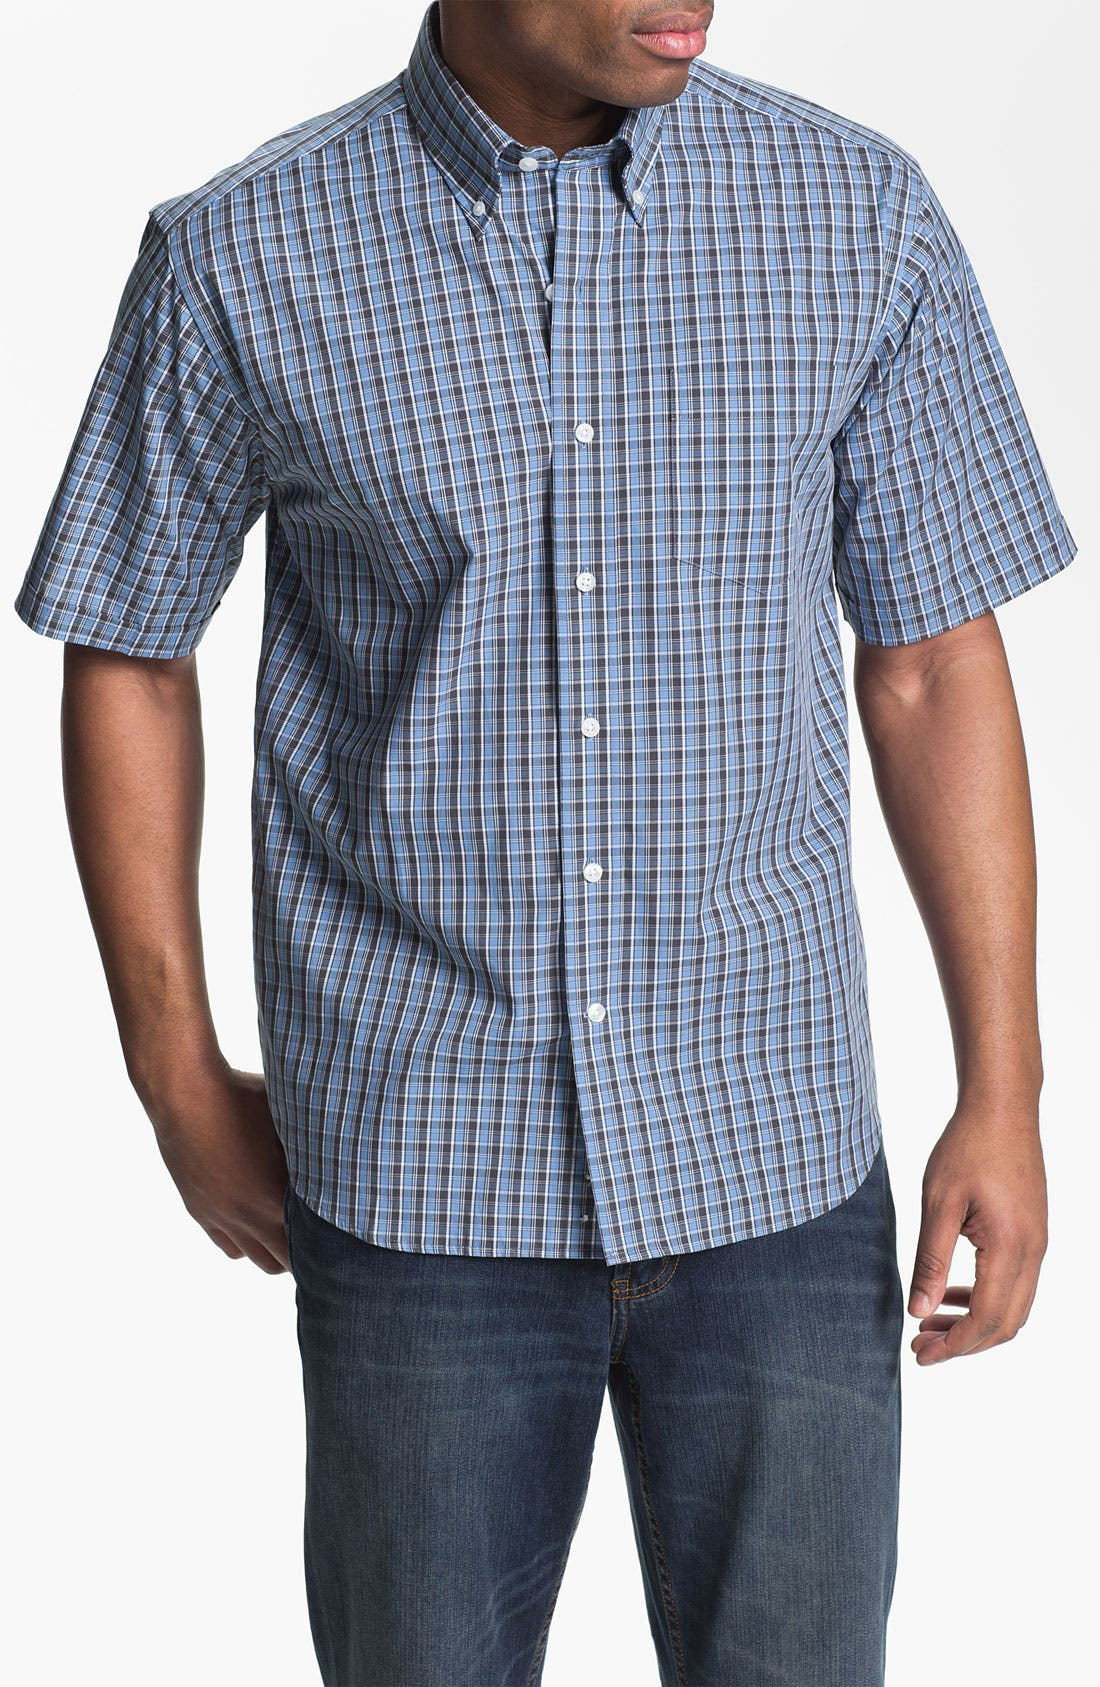 Alternate Image 1 Selected - Cutter & Buck 'Midvale' Check Sport Shirt